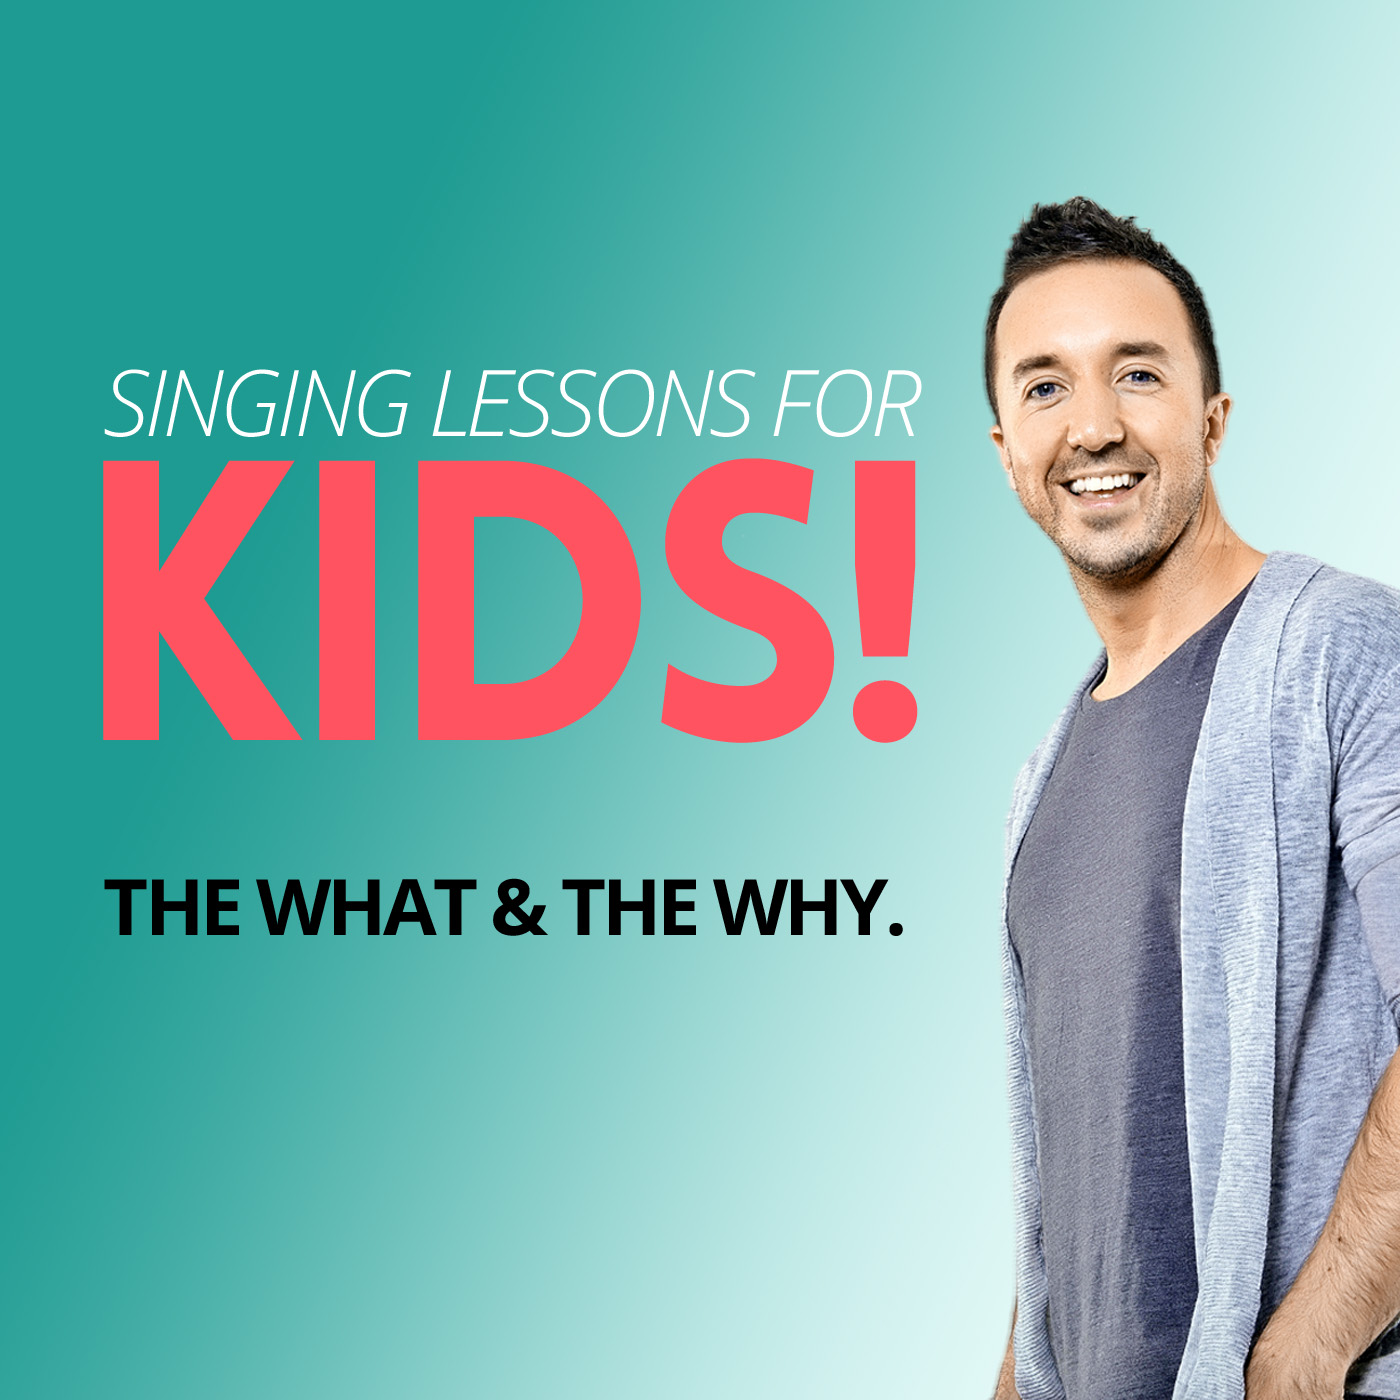 Singing Lessons For Kids. The What & The Why.